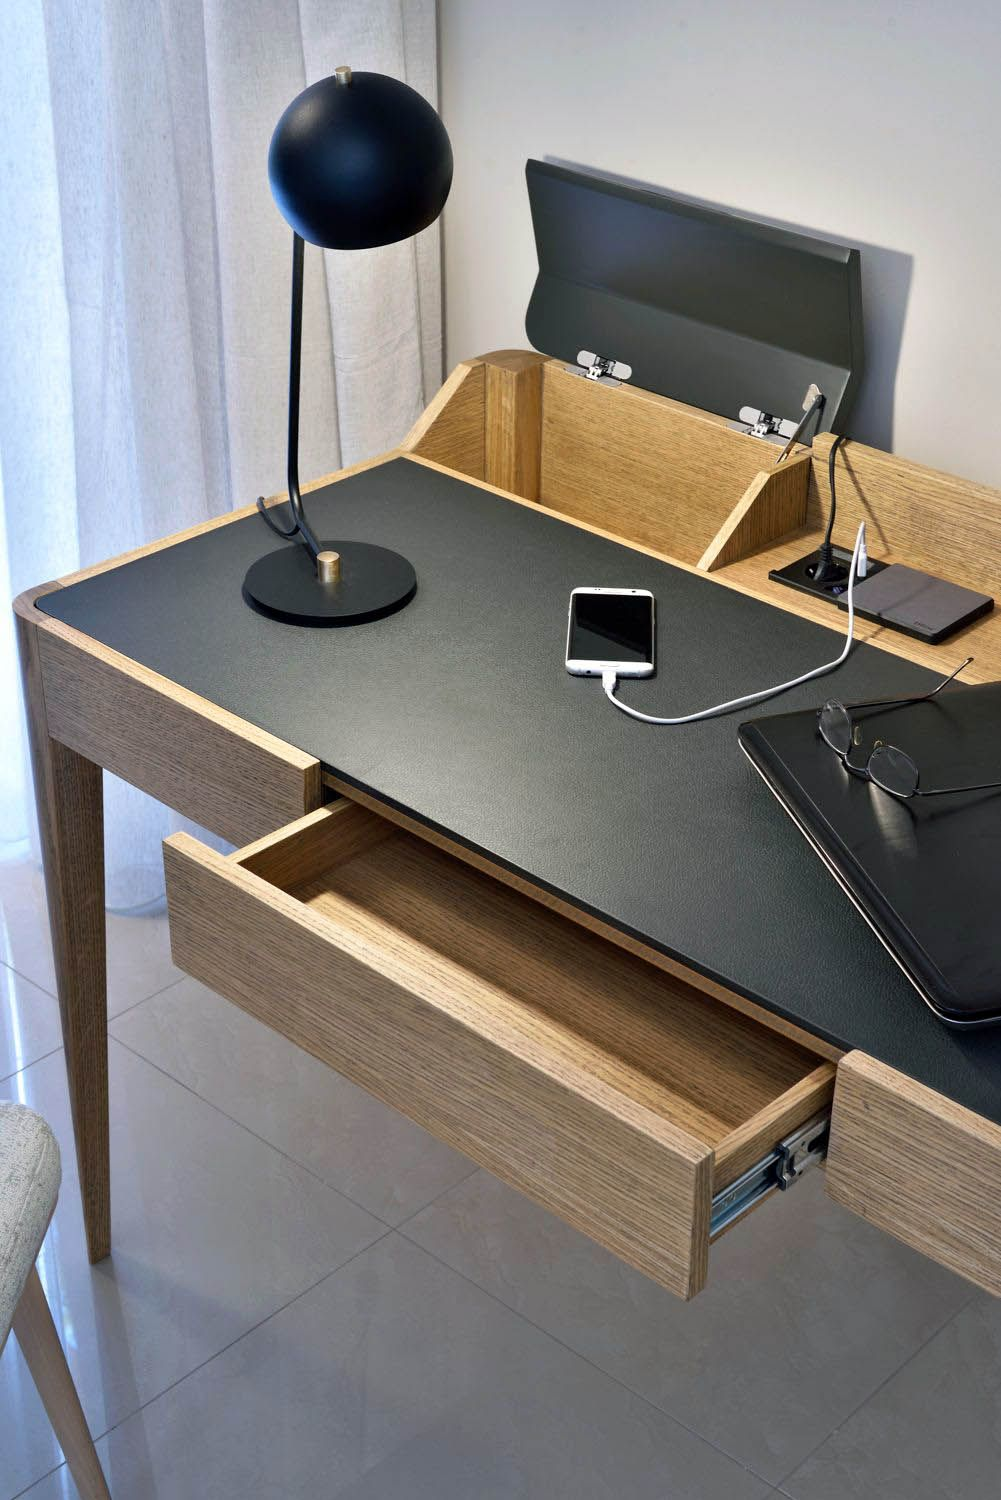 Leading Solid Wood Desk For Sale Cape Town On This Favorite Site Modern Wood Desk Desk Design Desk Furniture